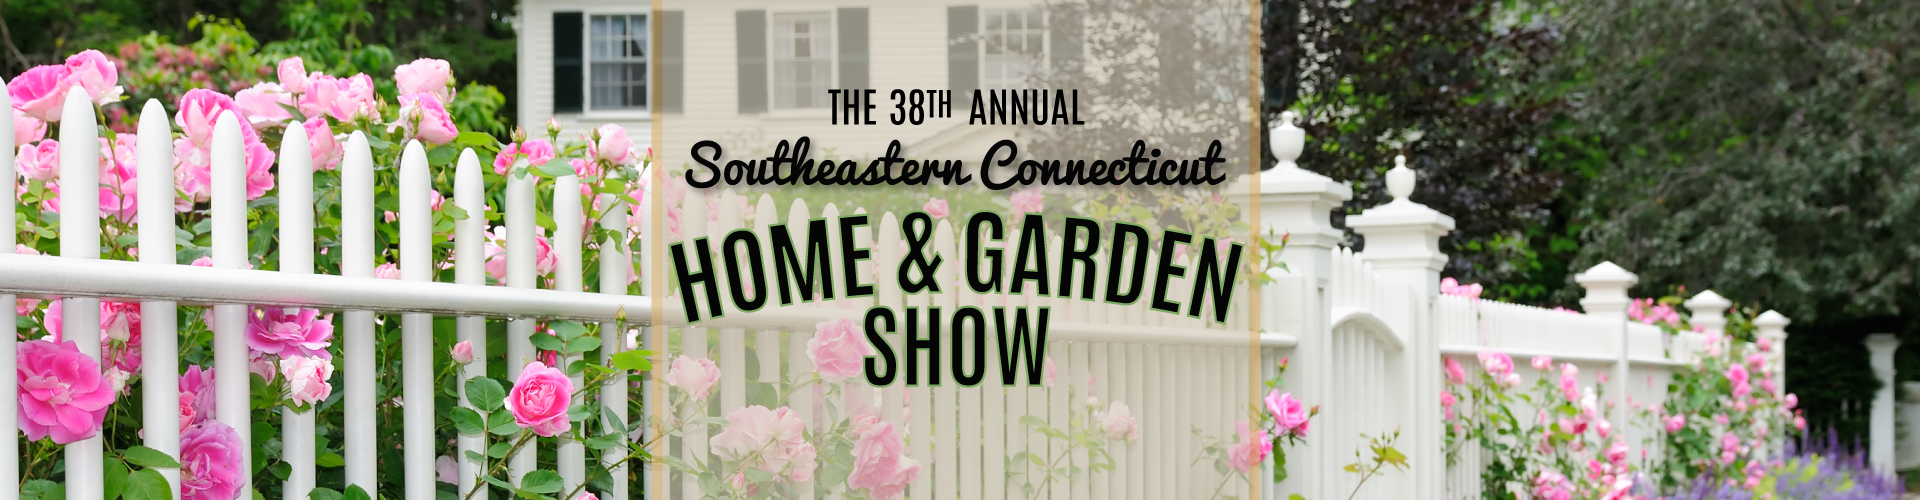 Jenks 2019 Southeastern CT Home And Garden Show Hours U0026 Location  Information U2013 Earth Tower Expo